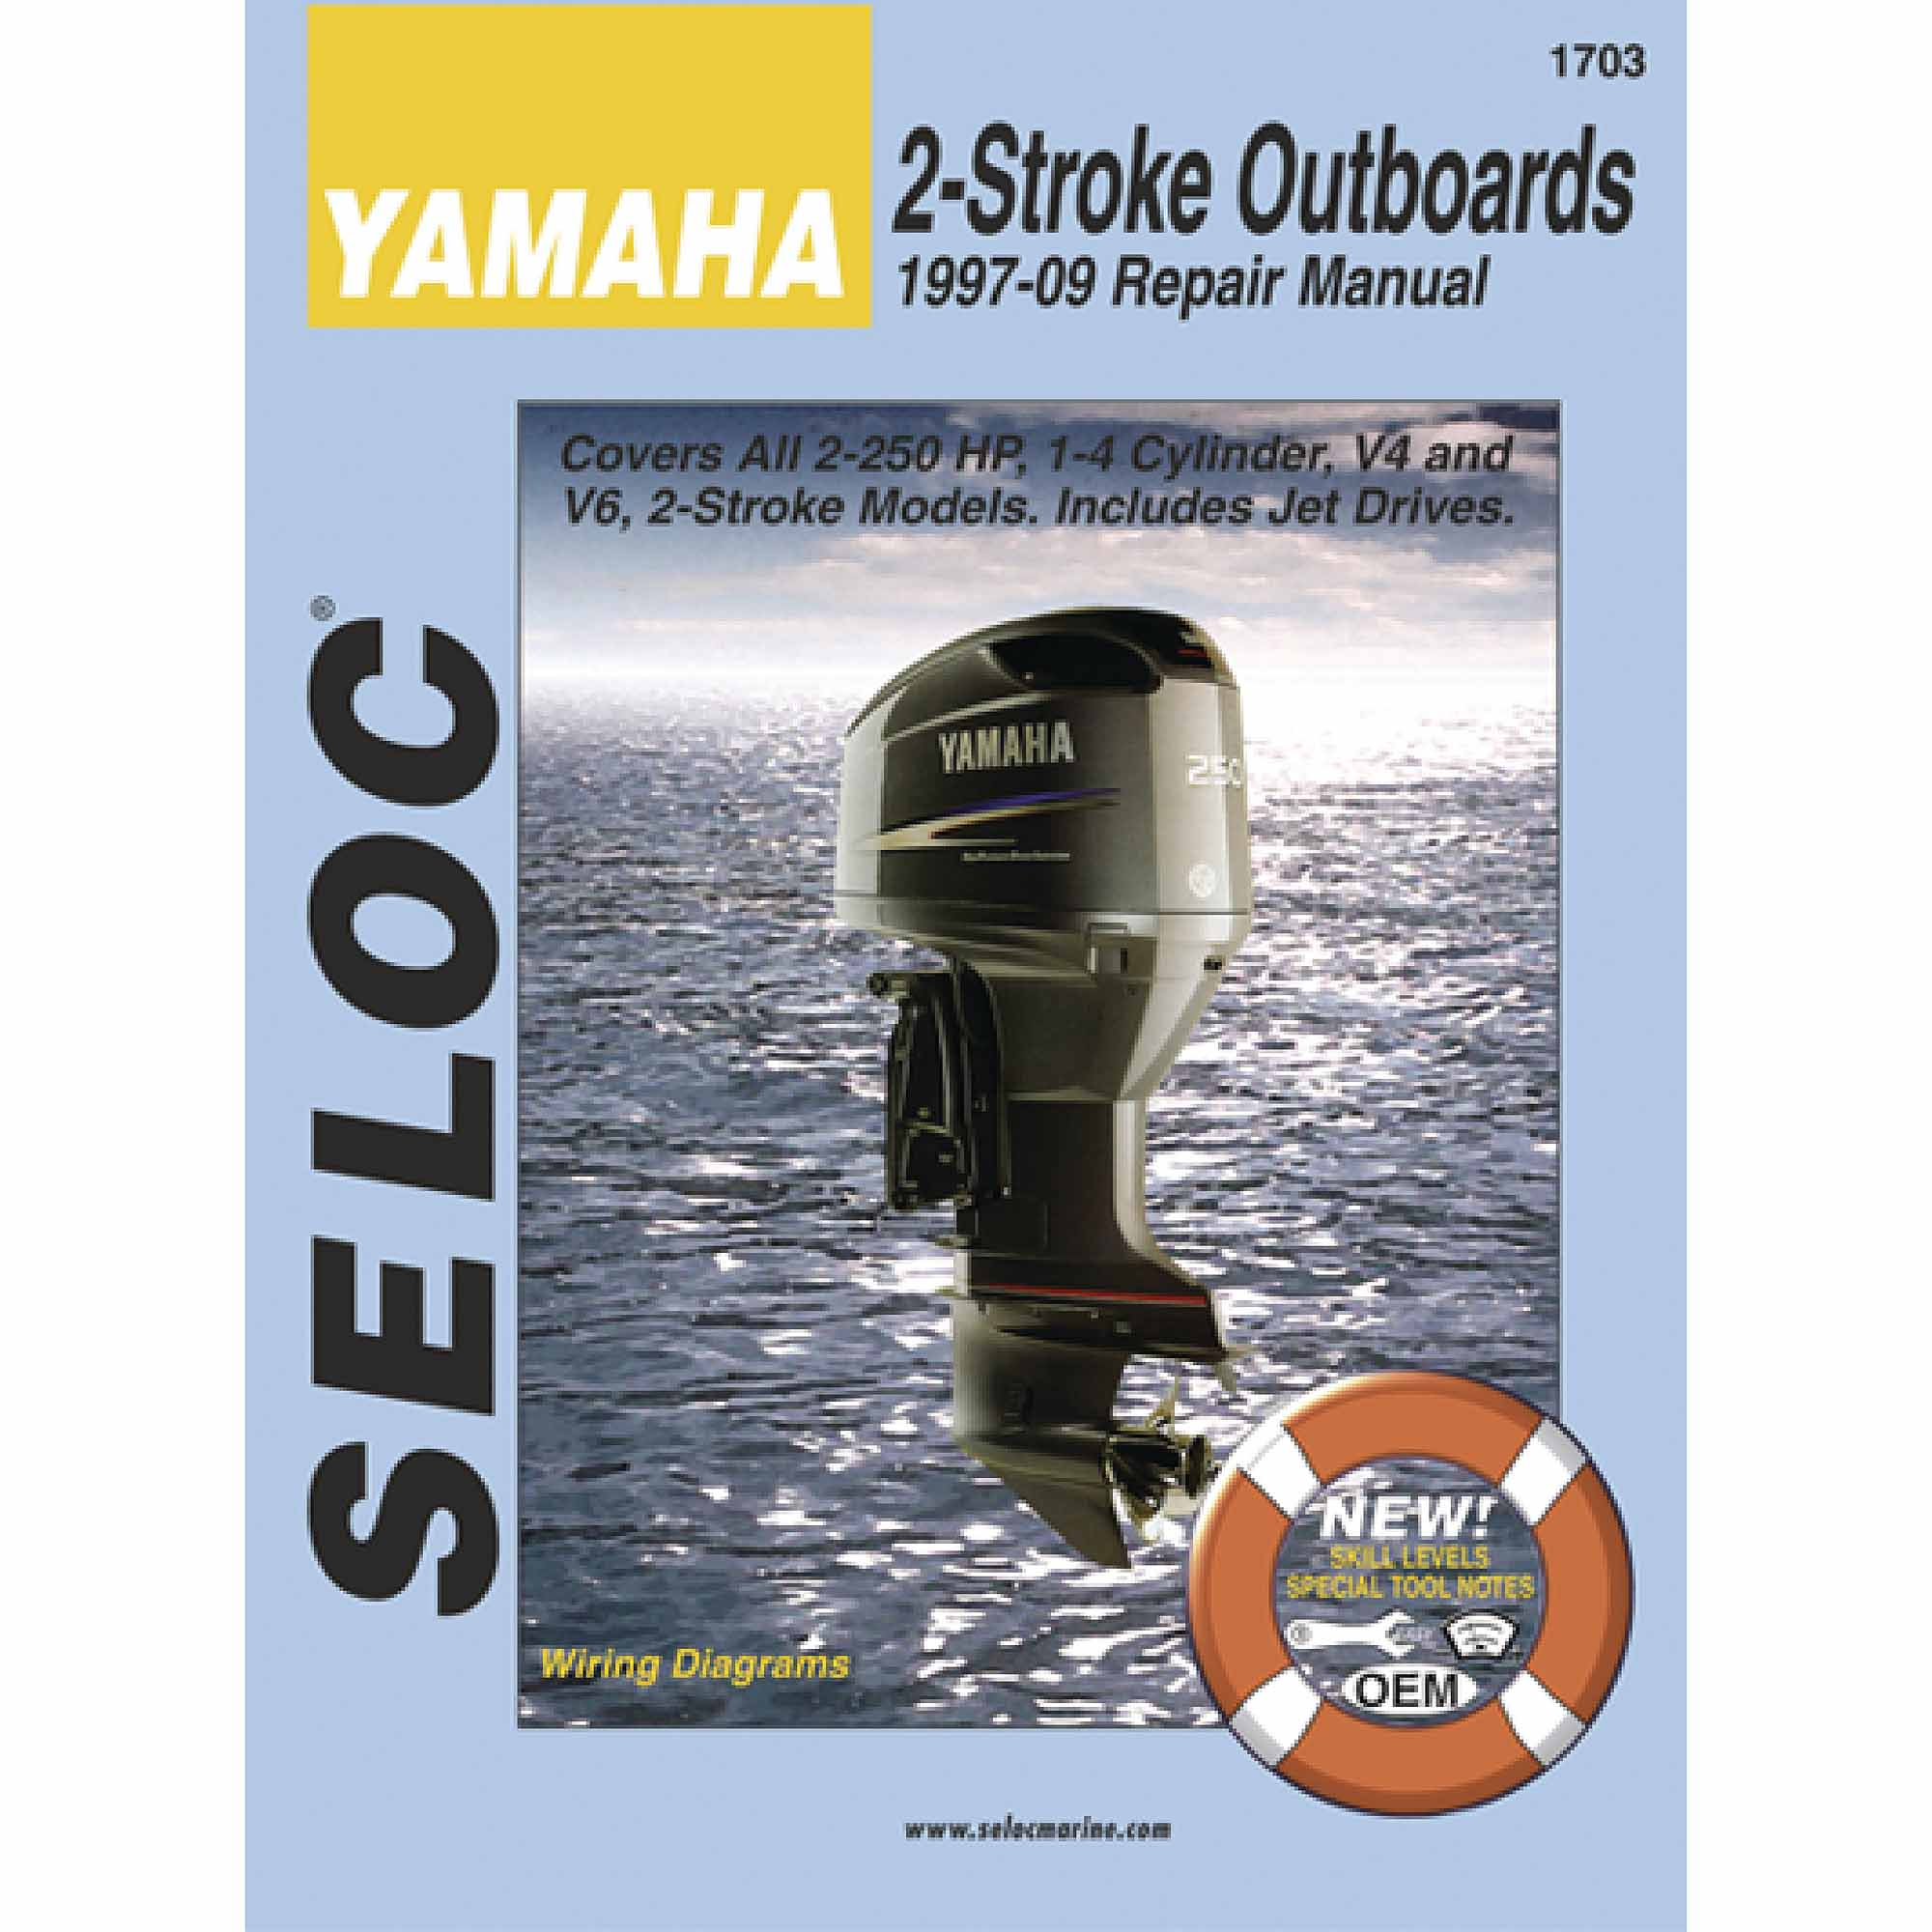 Seloc Marine Manual for Yamaha Outboards